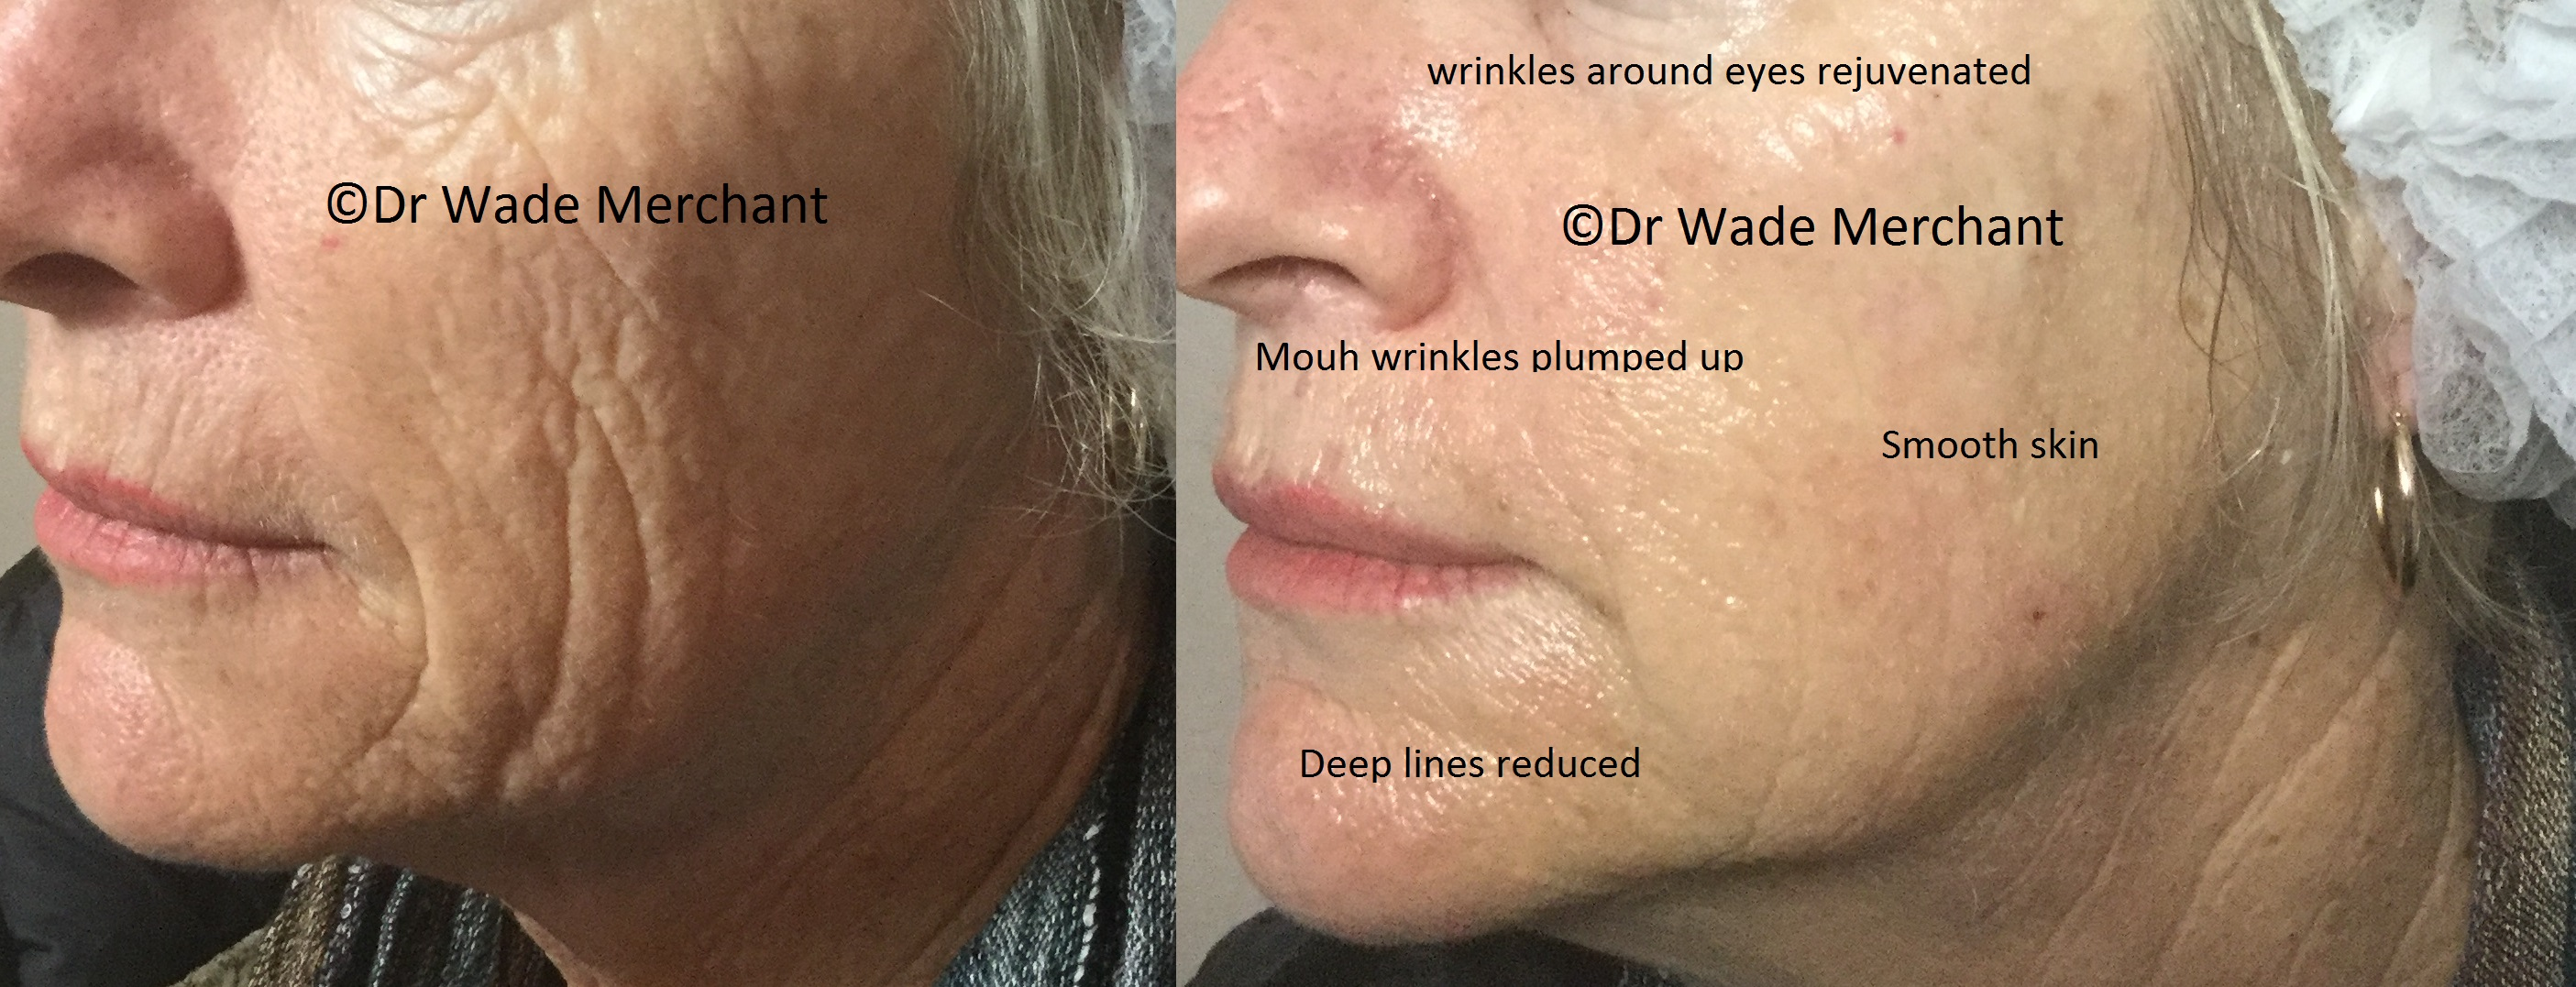 Restylane #Skinboosters used to treat the patient's wrinkles and skin folds as well as rejuvenating the patient's overall appearance. Done in under an hour, with zero to minimal downtime.